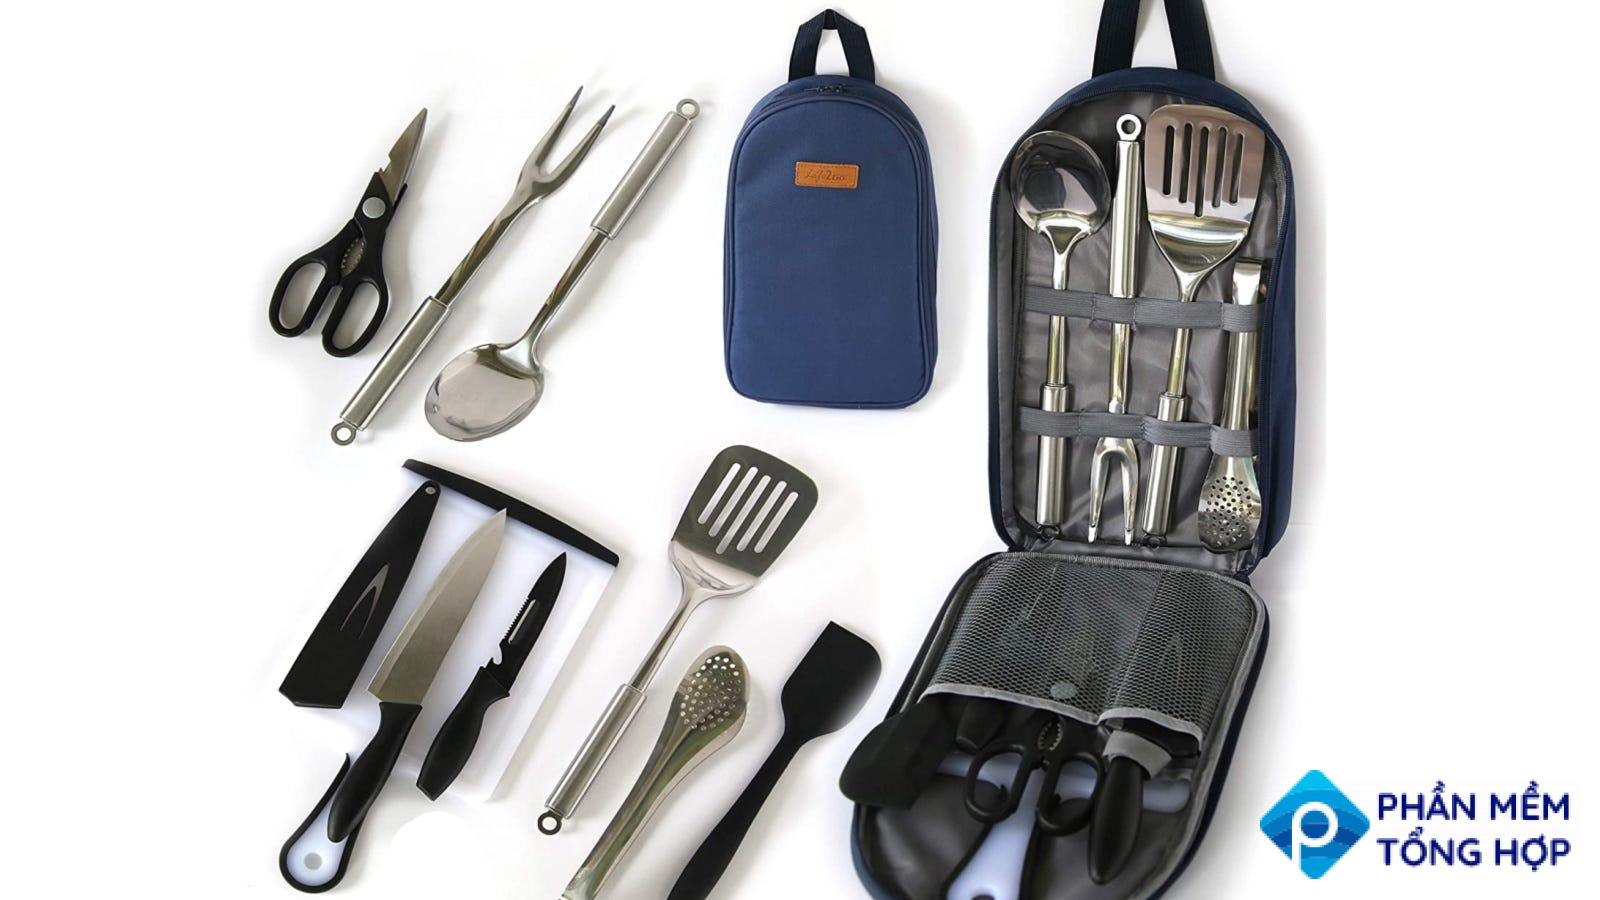 An image displaying all the components of the Life 2 Go Cooking Utensils set on a white backdrop.